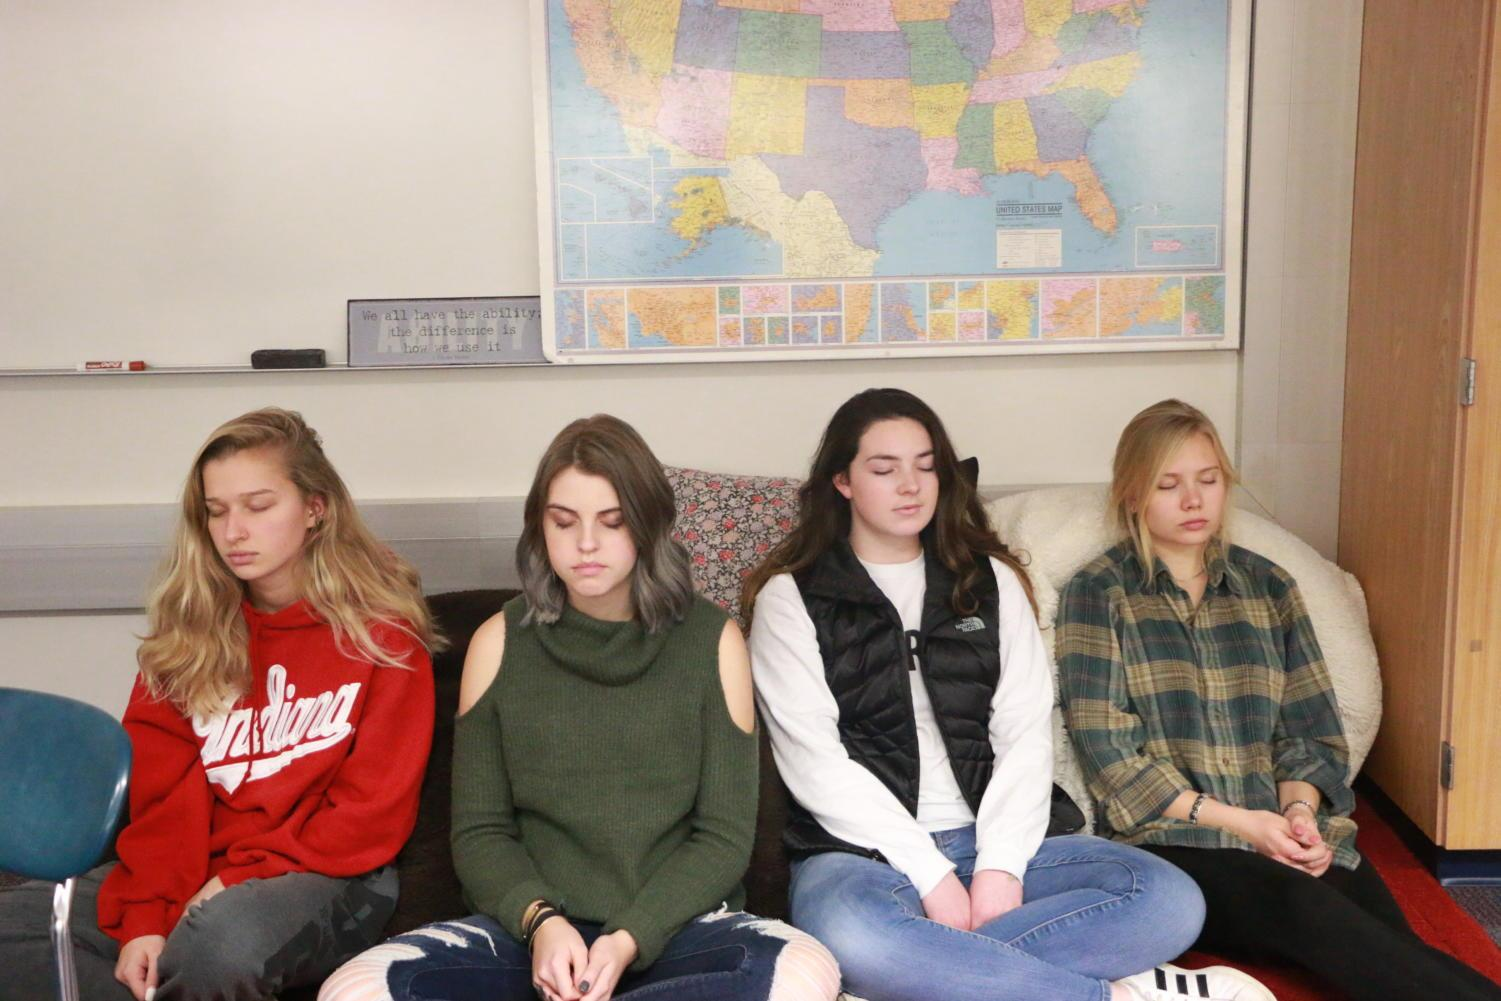 Theory of Knowledge (TOK) students work on their breathing meditation. Junior Aubrie Bradbury (second from the right) said she found out about mindfulness during her freshman year, but during TOK, she got back into practicing mindfulness, which has been helpful for her.